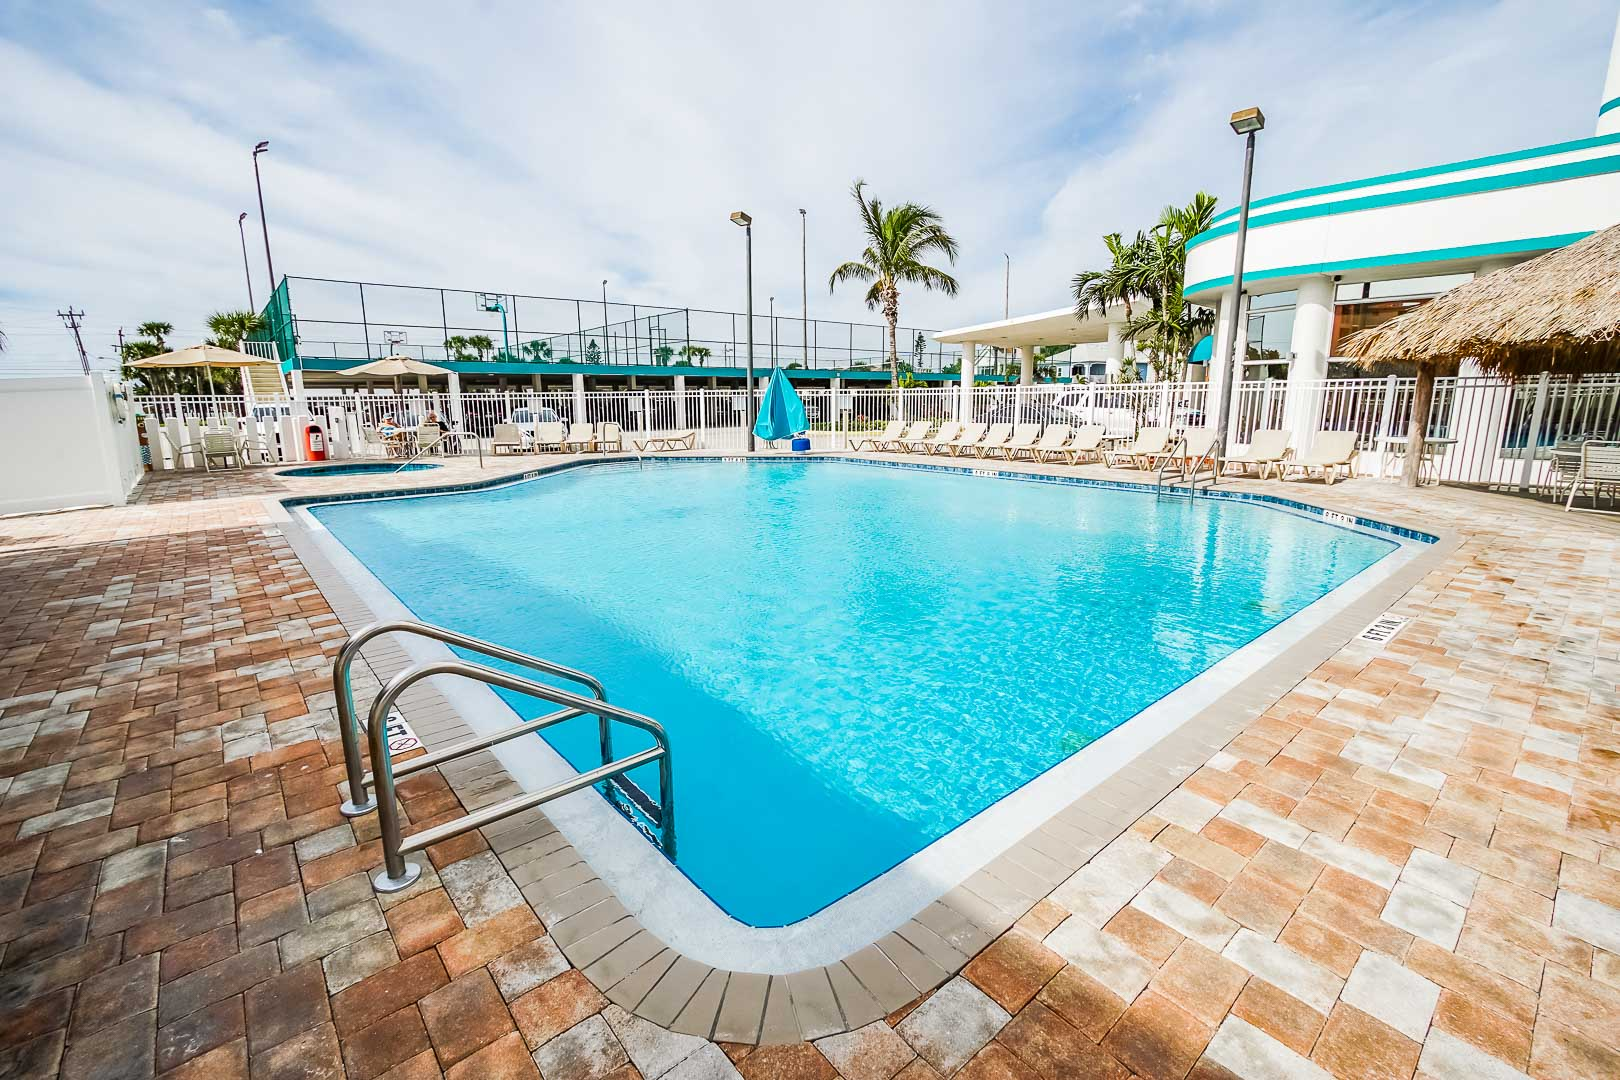 A spacious outdoor swimming pool at VRI's Discovery Beach Resort in Cocoa Beach, Florida.